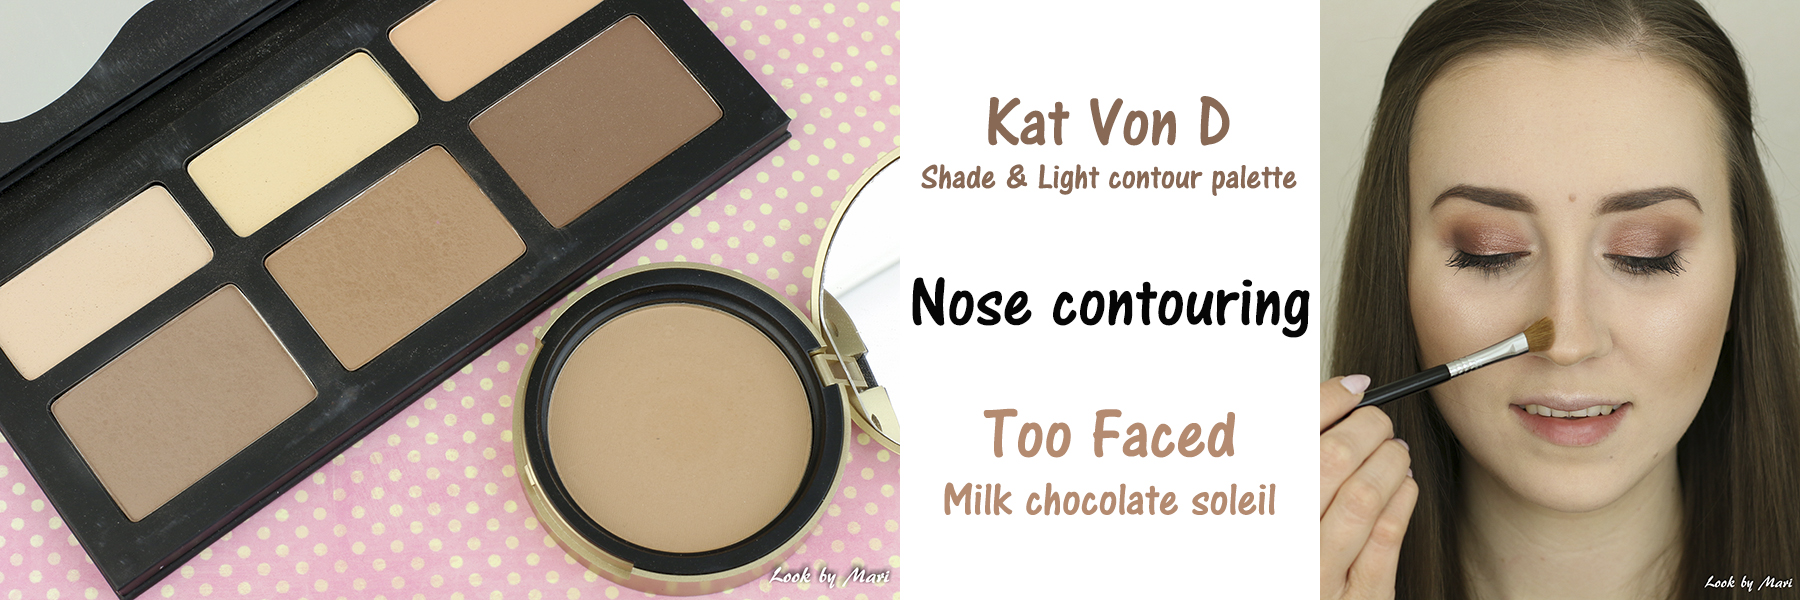 17 too faced milk chocolate soleil review kokemuksia for pale skin